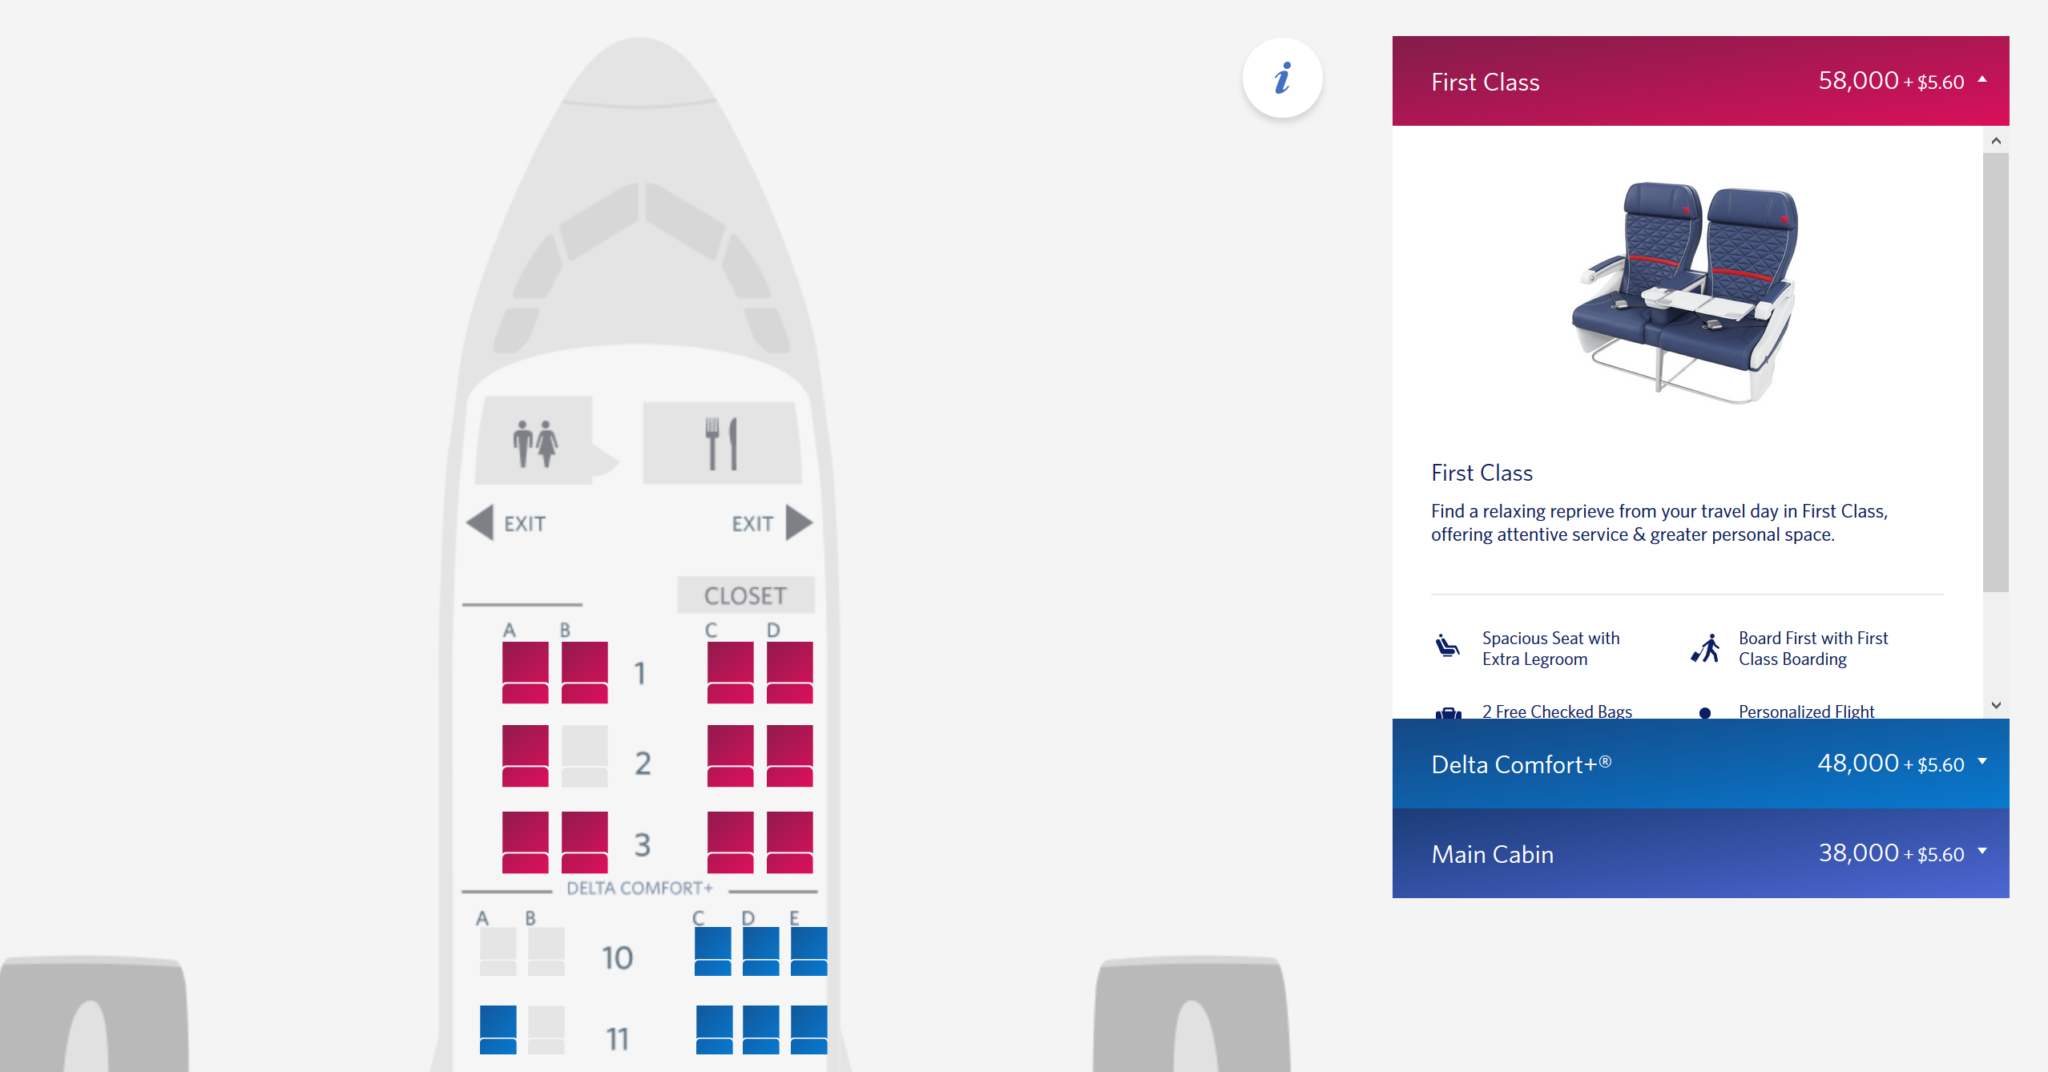 Where are the Delta SkyMiles First Class deals